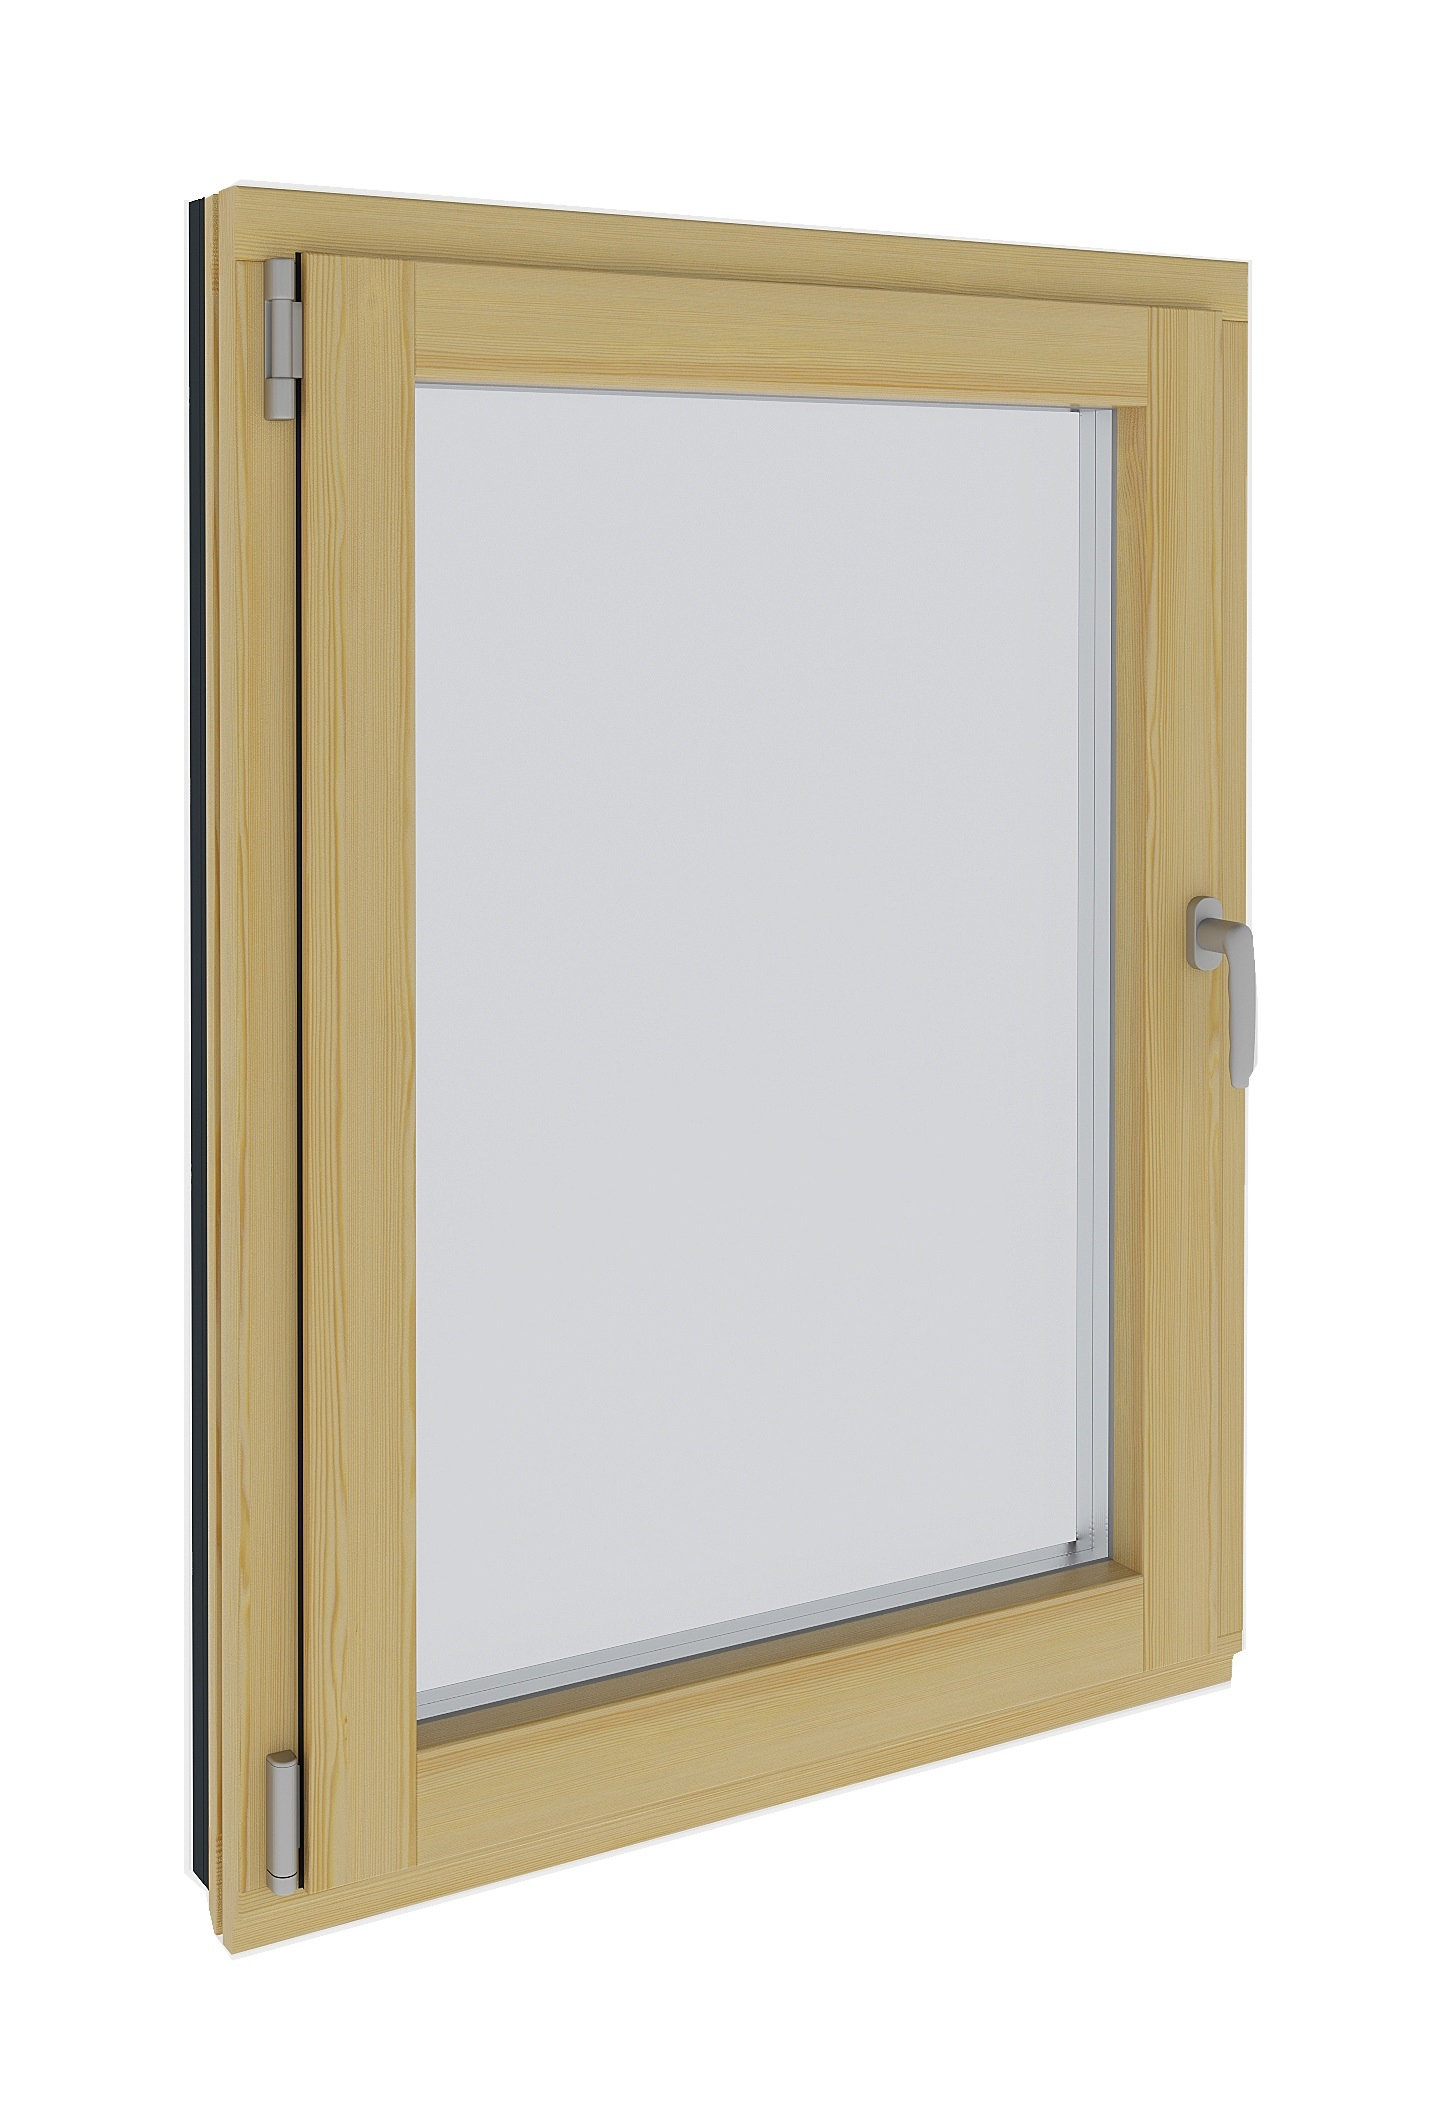 TIMBER-​ALUMINIUM WINDOWS CLASSIC PRO WARM C109-ALU